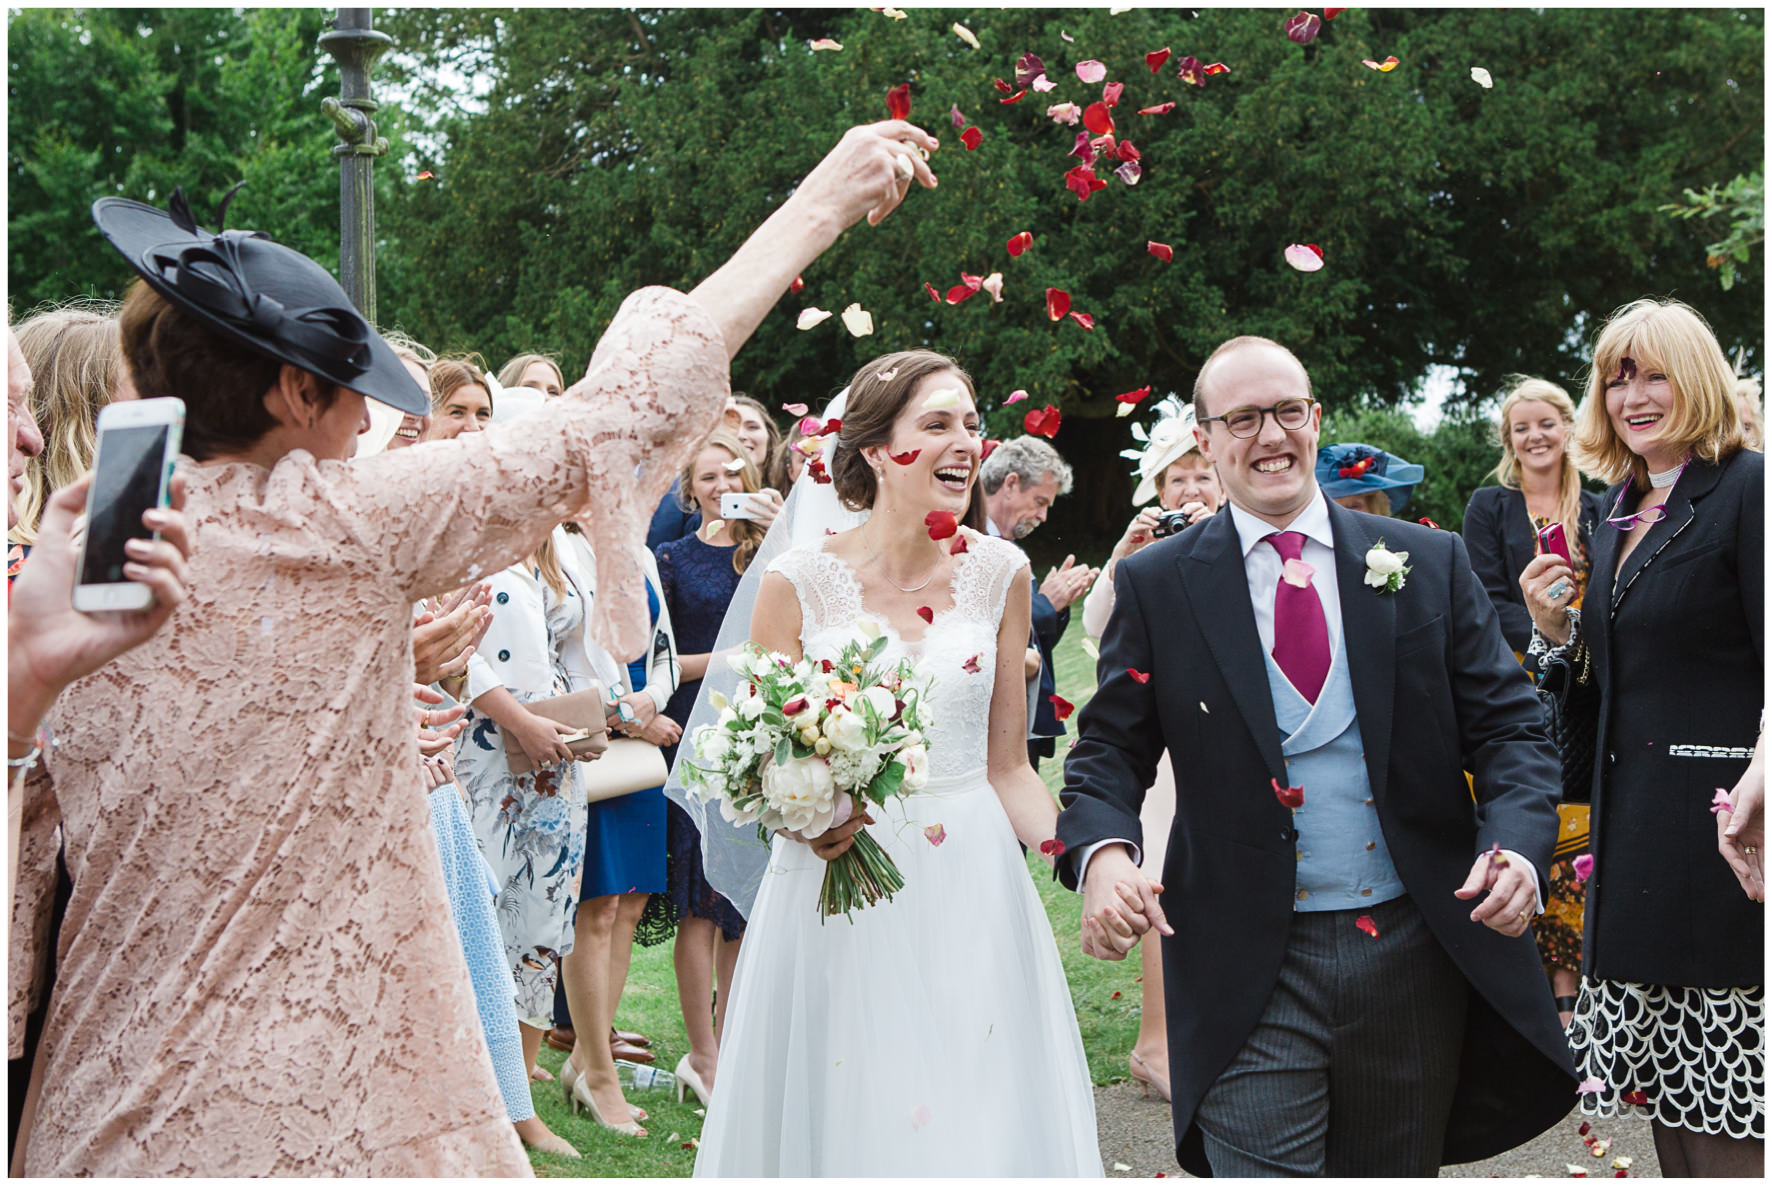 Lucy Davenport Photography, Cornwell Manor, wedding venue, Oxfordshire, Cotswold wedding, confetti, bride and groom, church wedding